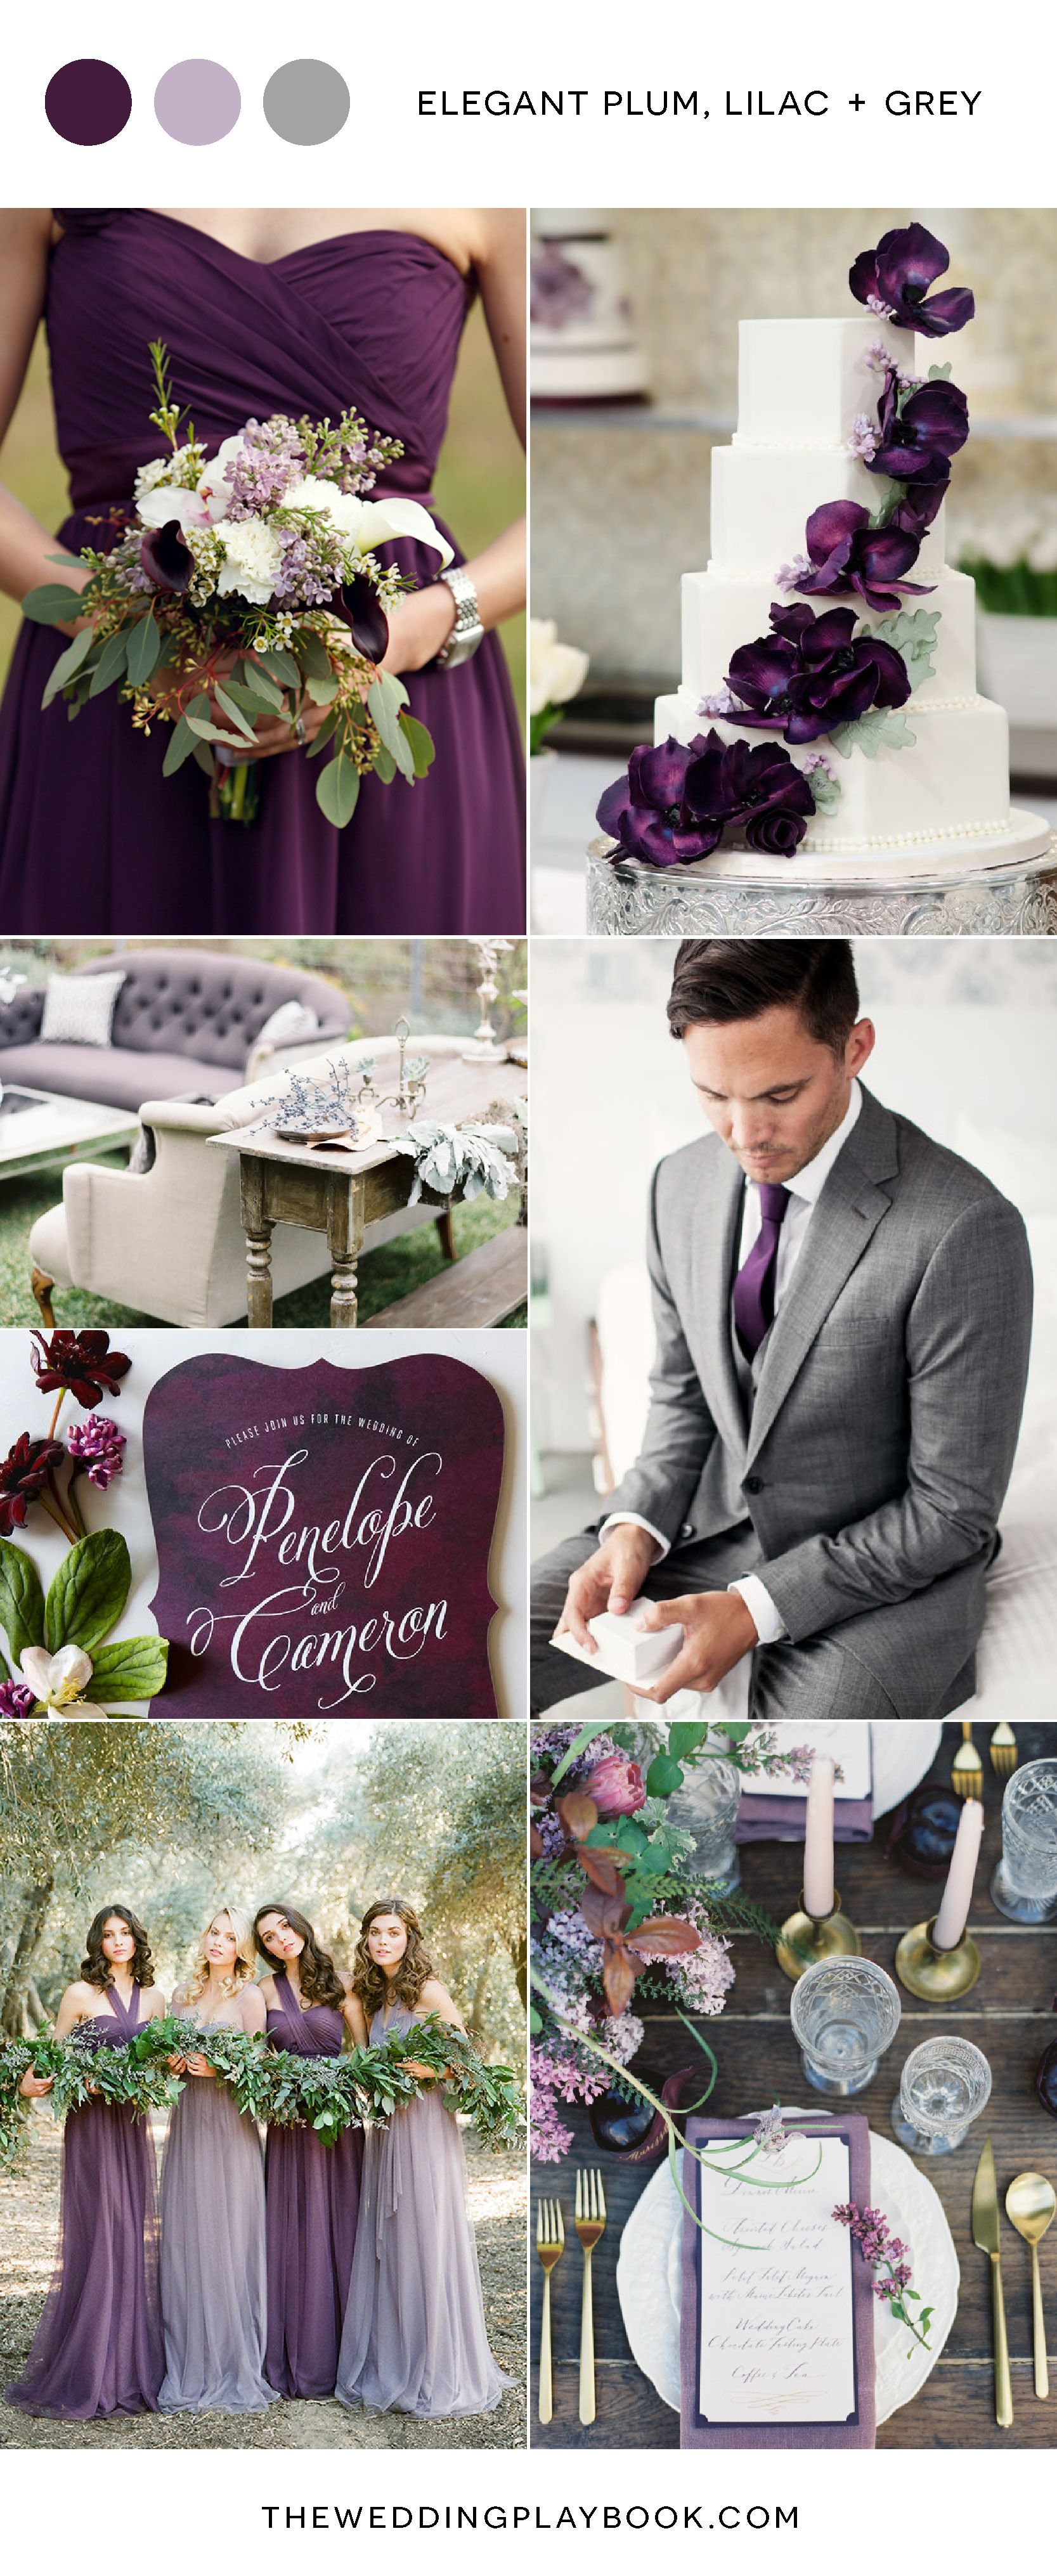 plum, lilac and grey wedding inspiration | elegant winter